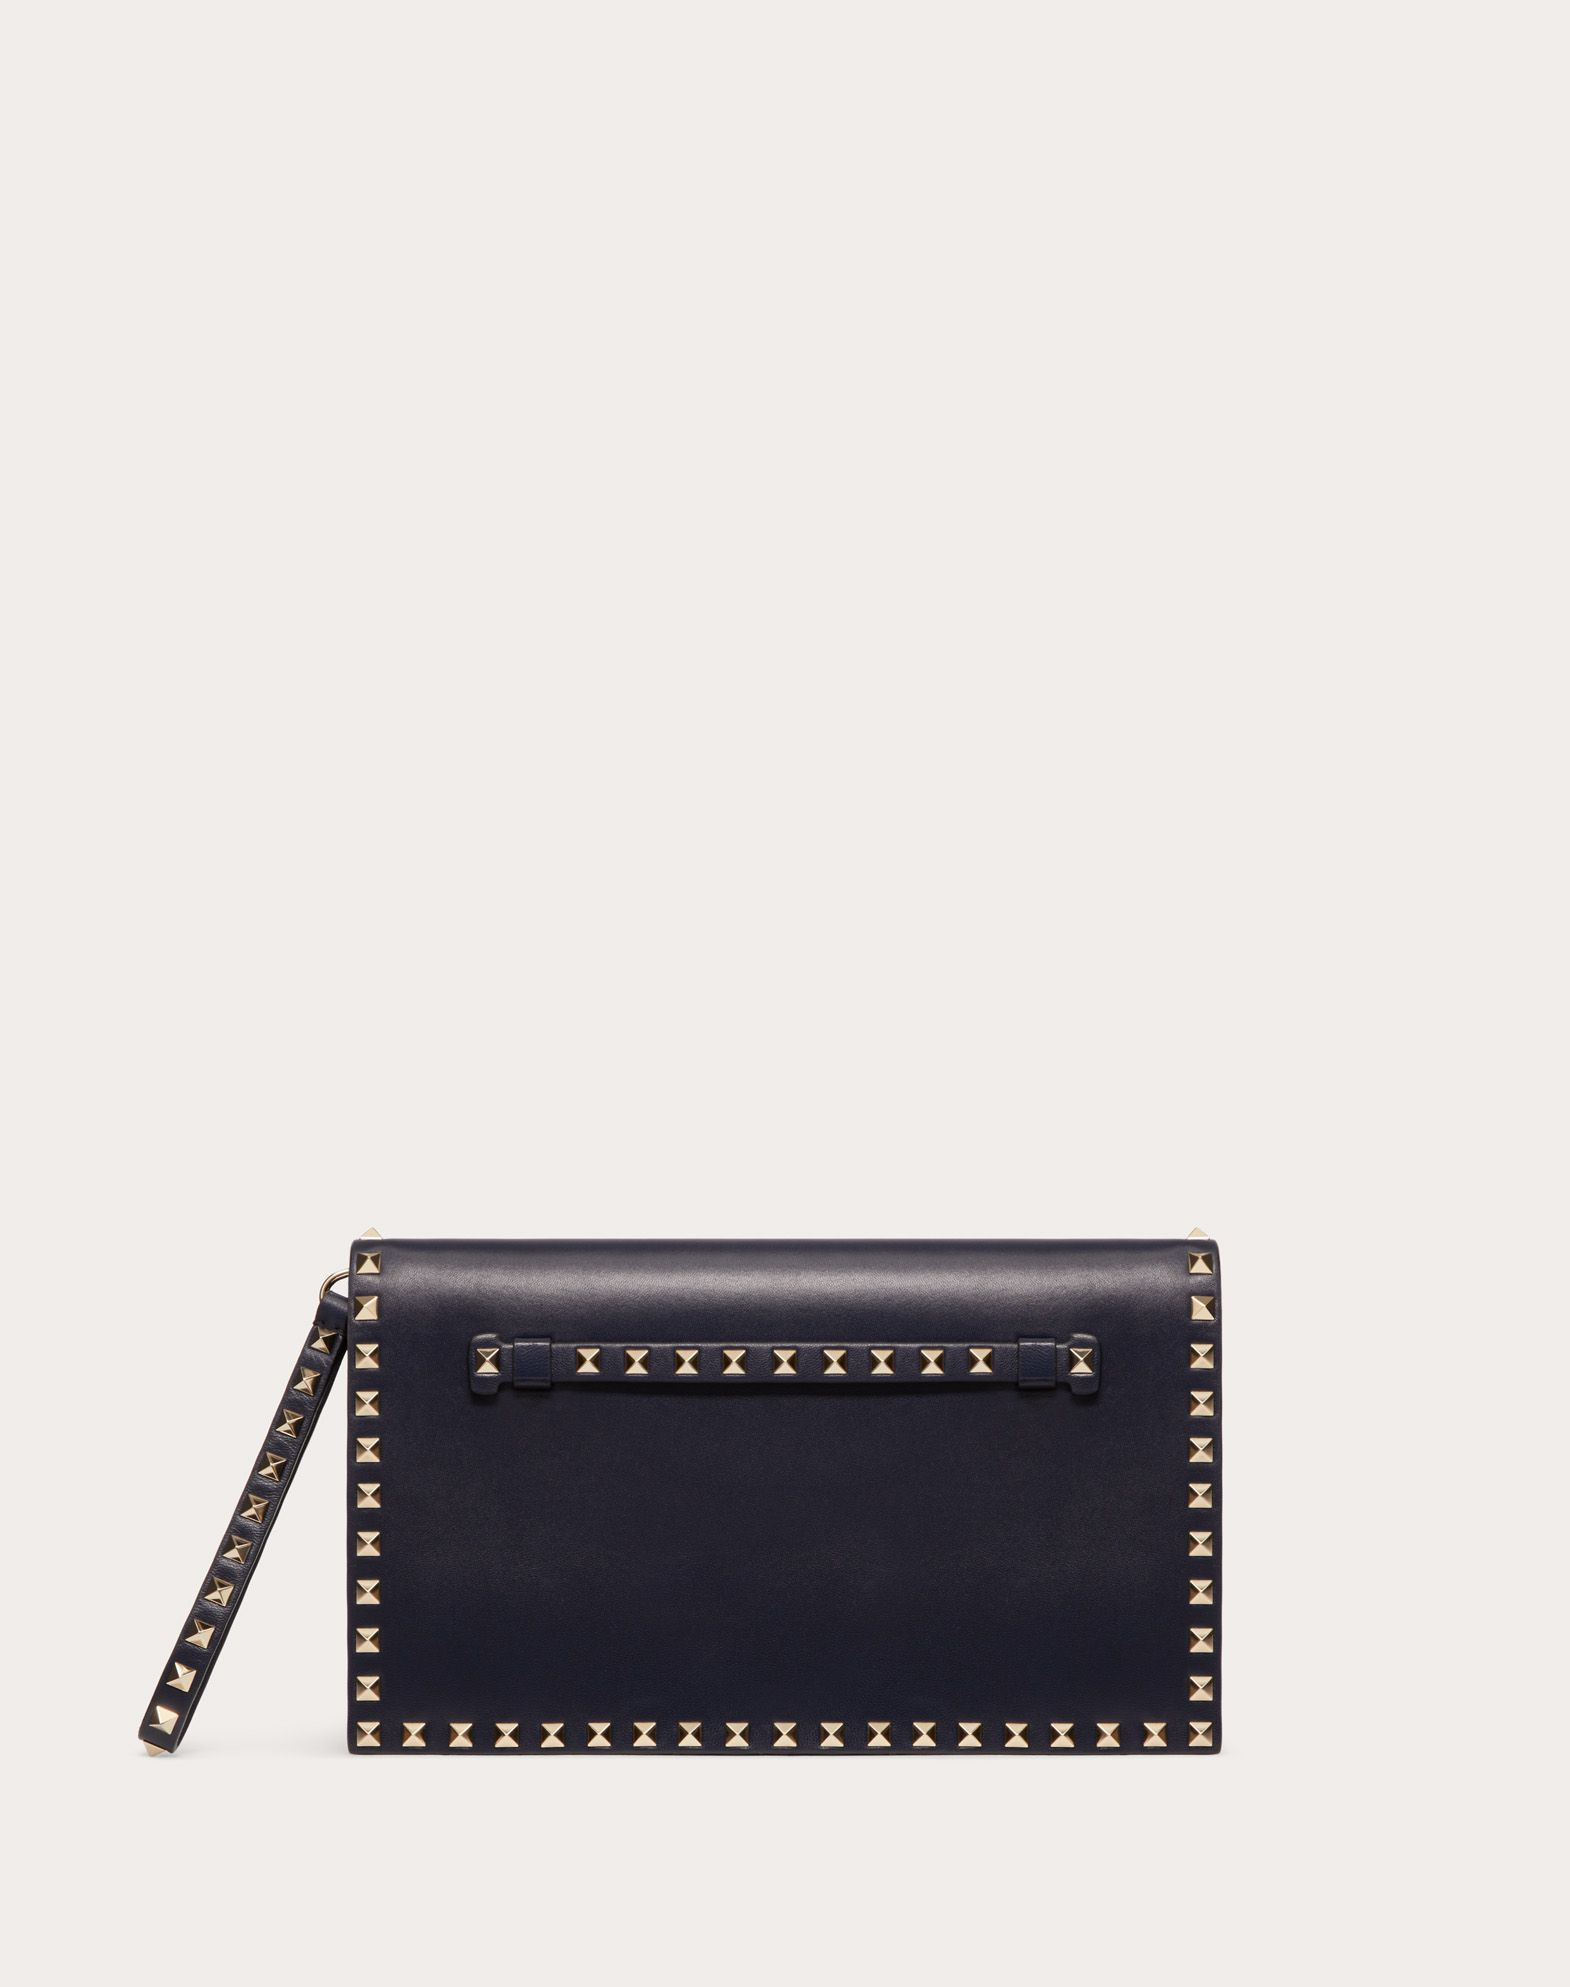 VALENTINO Logo Studs Solid color Snap button closure  45378875jw